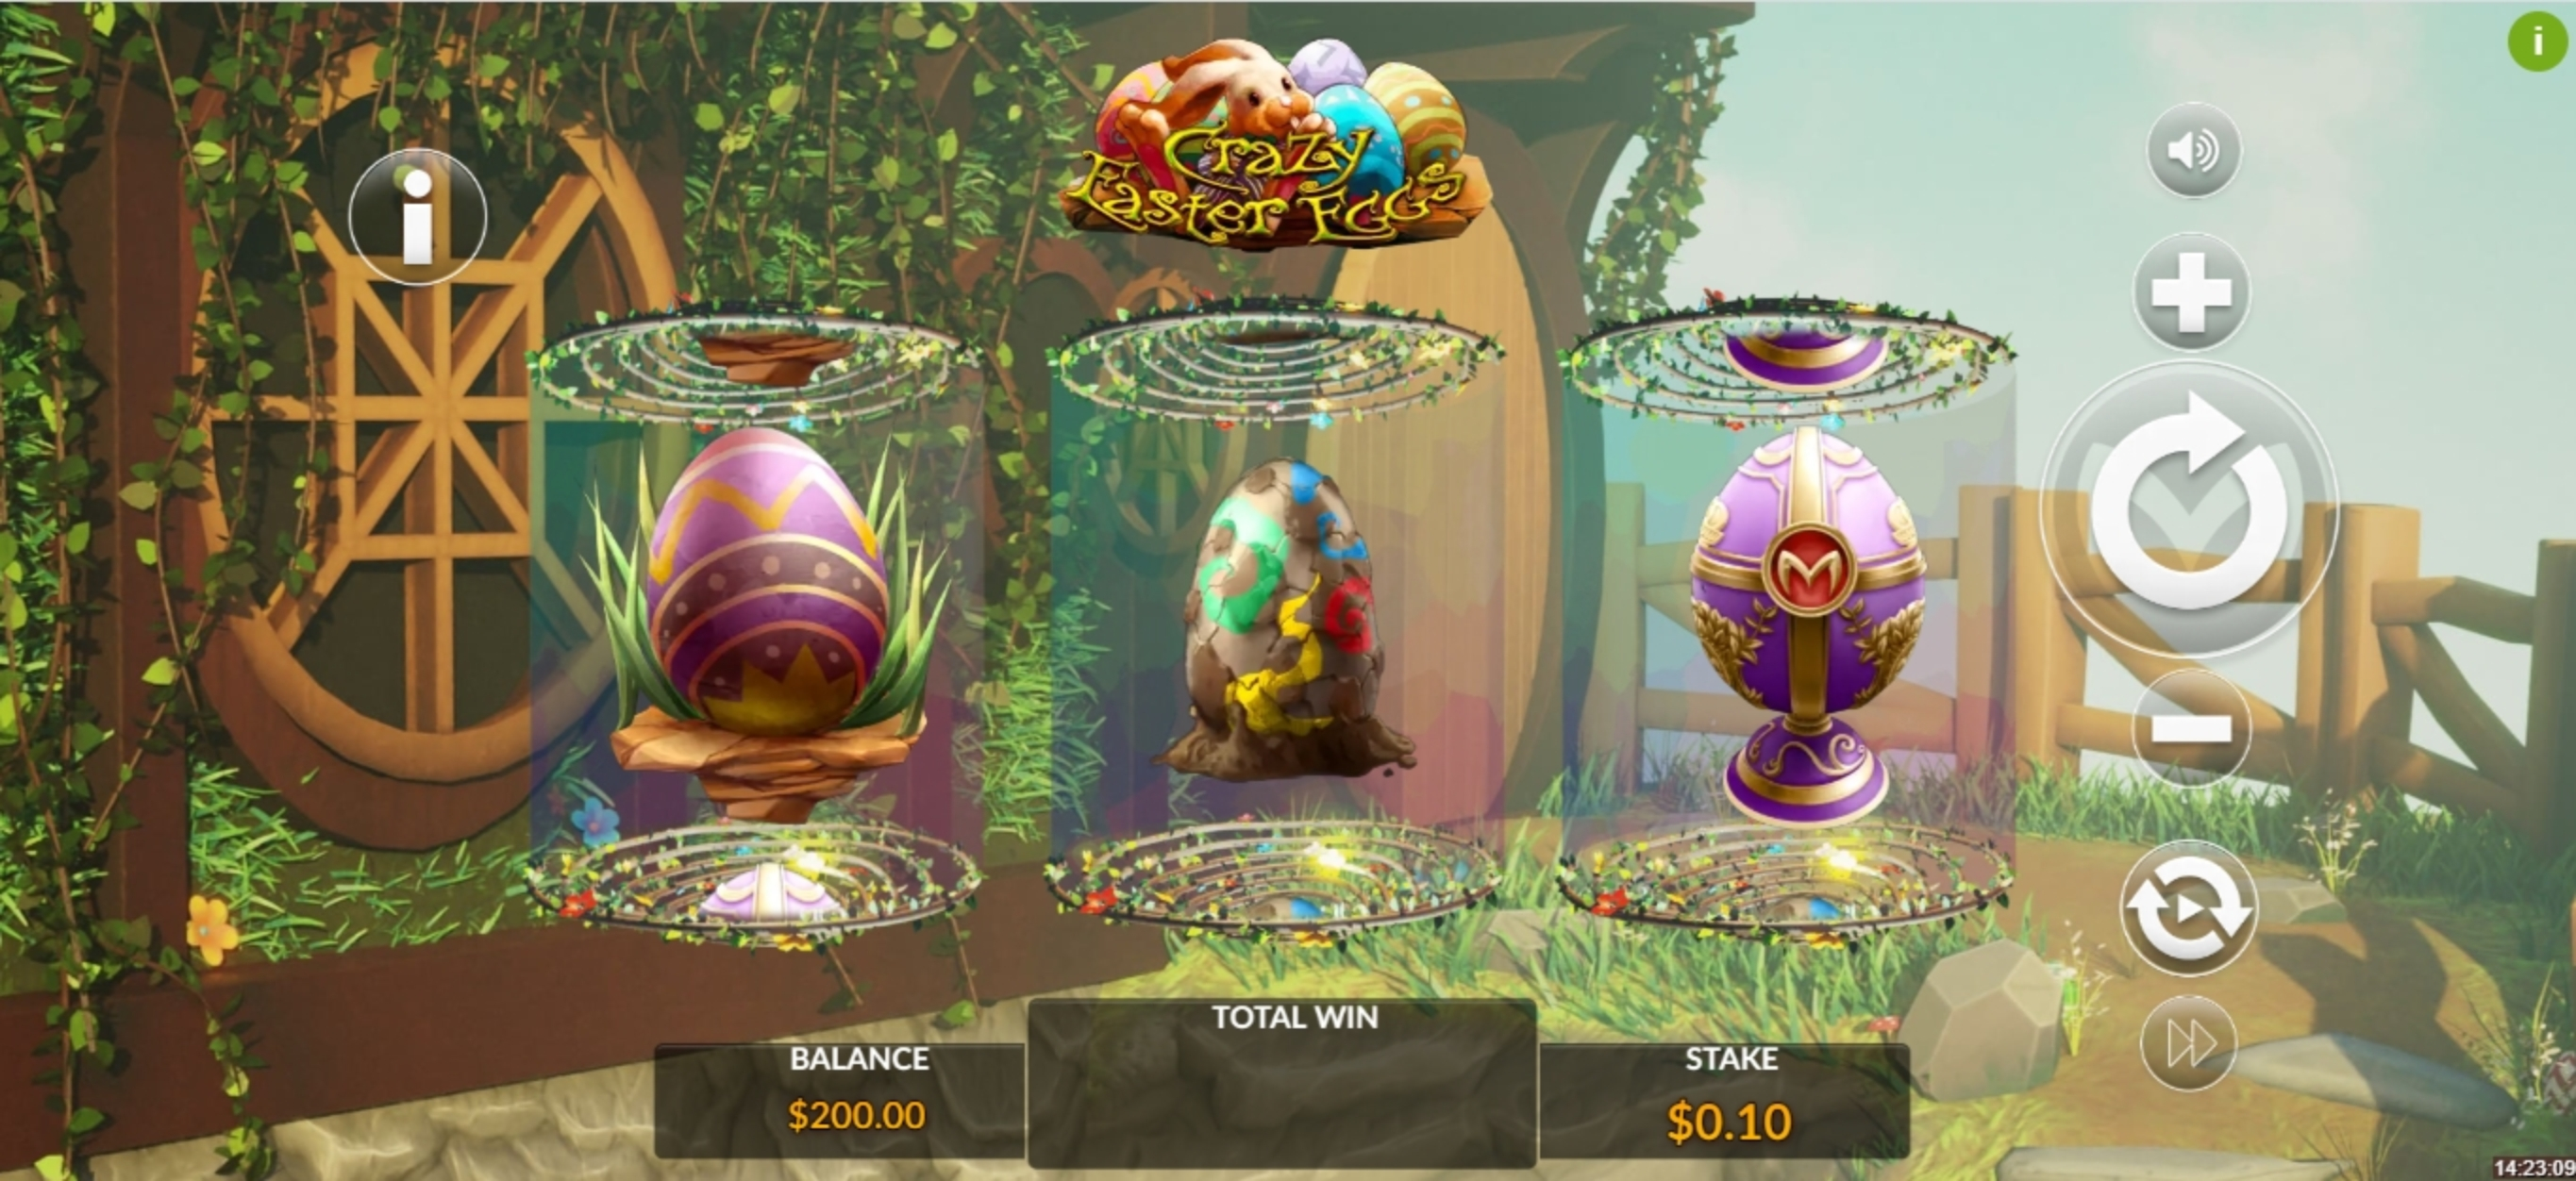 Reels in Crazy Easter Eggs Slot Game by Maverick